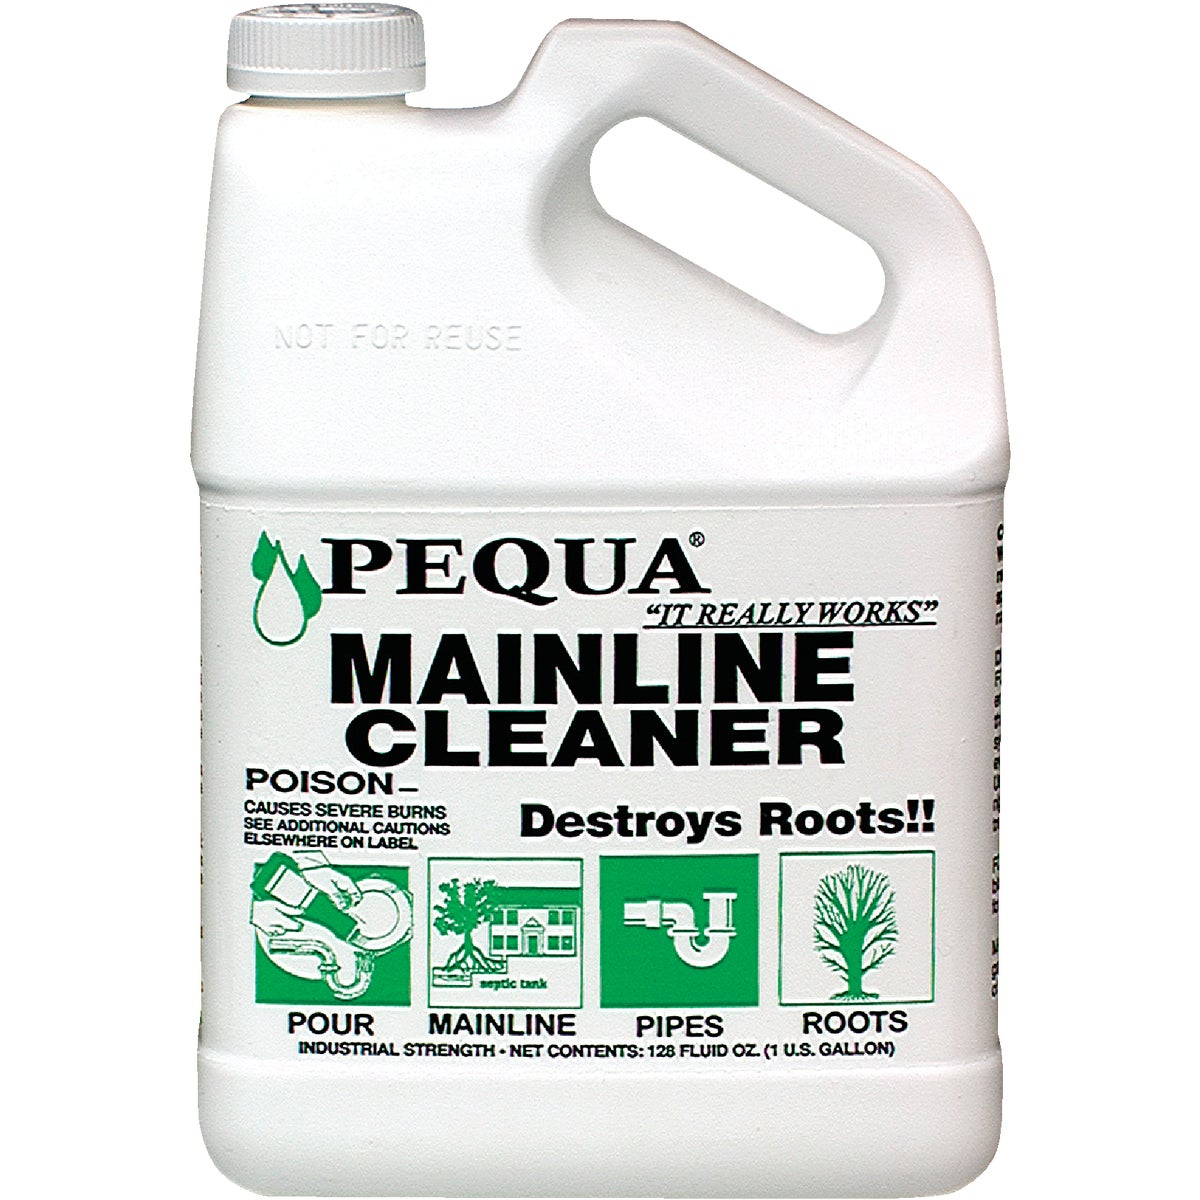 1-GAL MAINLINE CLEANER